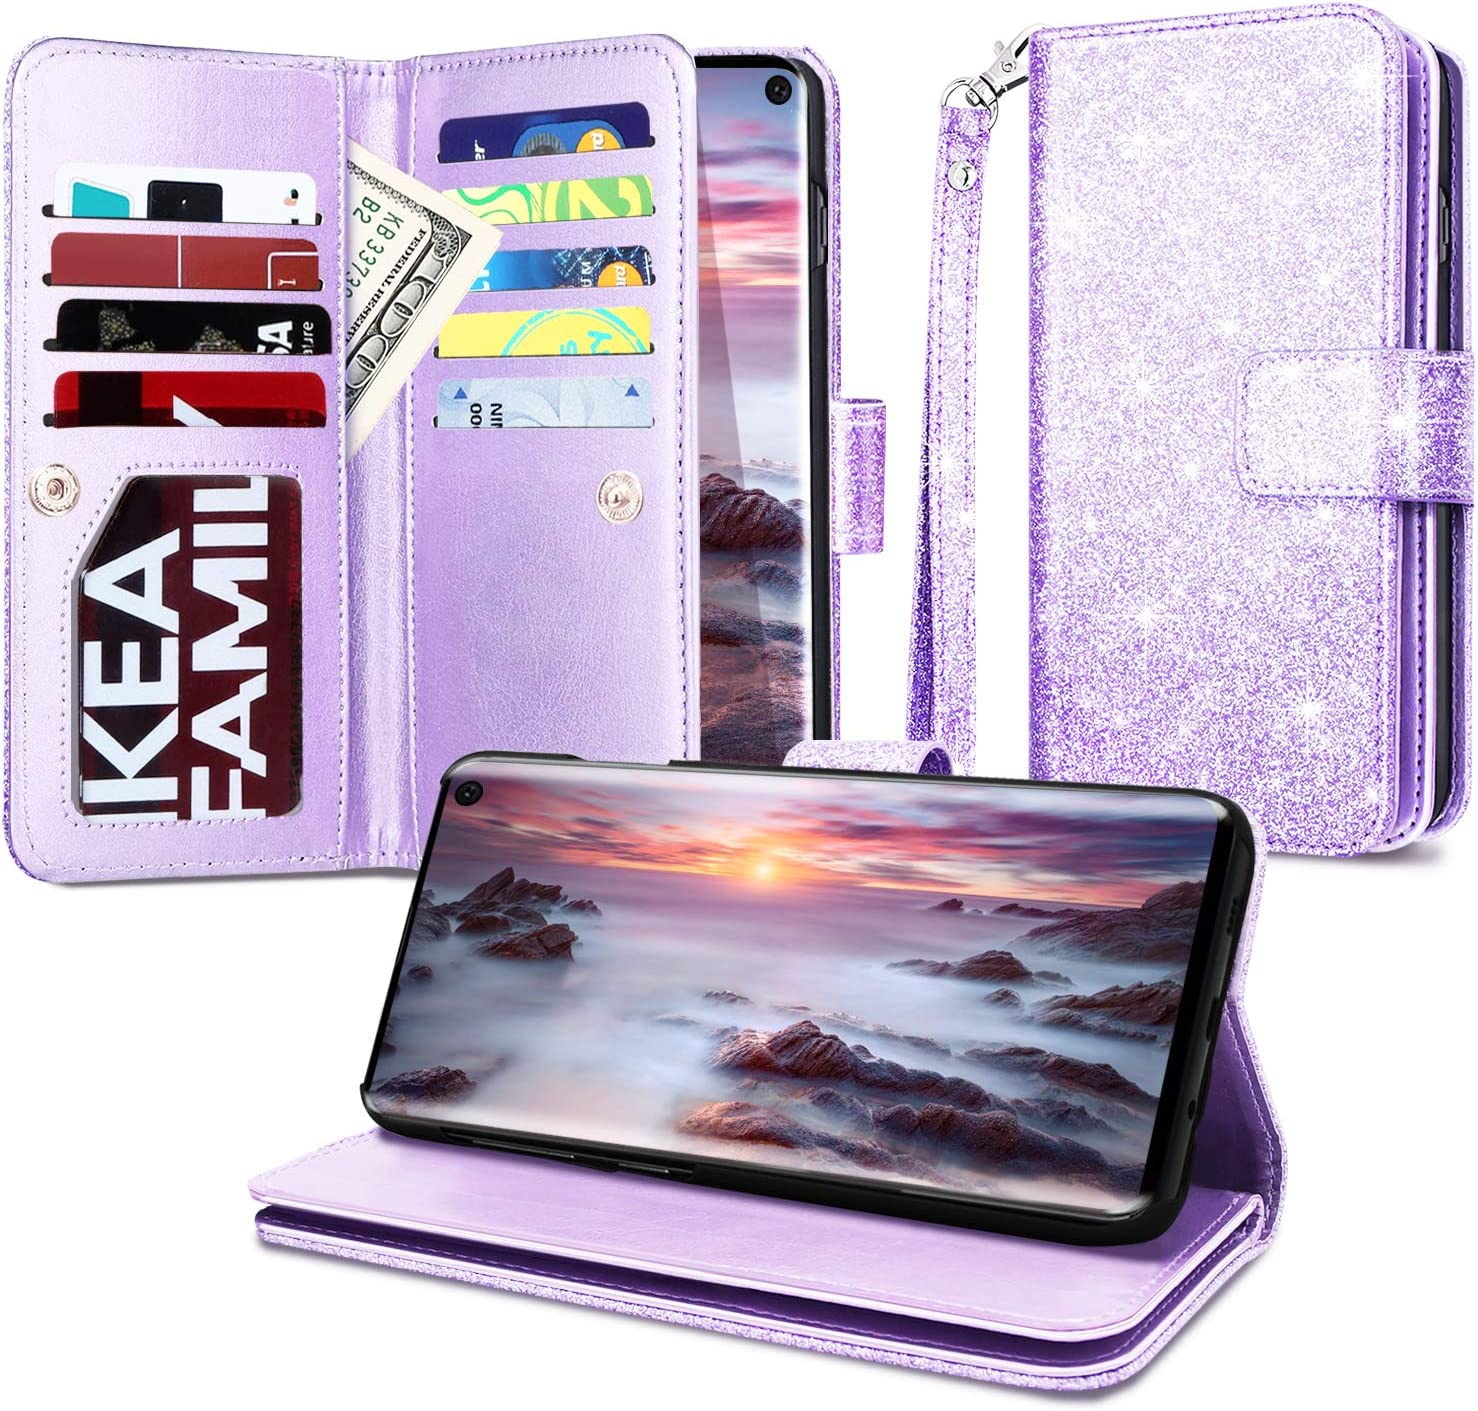 Casewind Samsung S10e Case, Samsung Galaxy Note S10e Wallet Case Glitter with Kickstand Magnetic Closure Card Slot Holder Full-Body Protective PU Leather Flip Cover Galaxy S10e Case for Girls,Purple